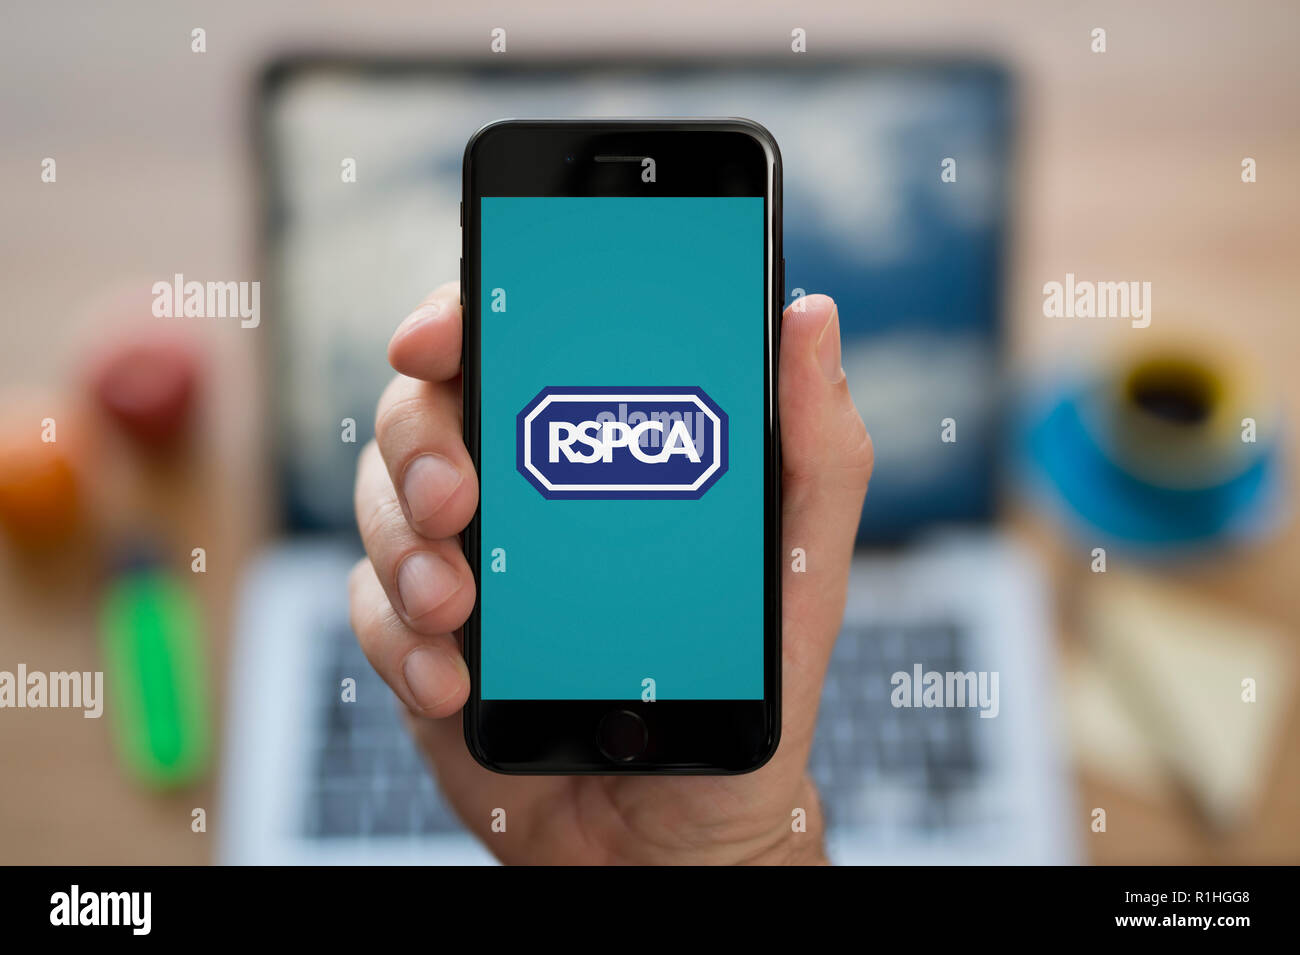 A man looks at his iPhone which displays the RSPCA logo, while sat at his computer desk (Editorial use only). - Stock Image